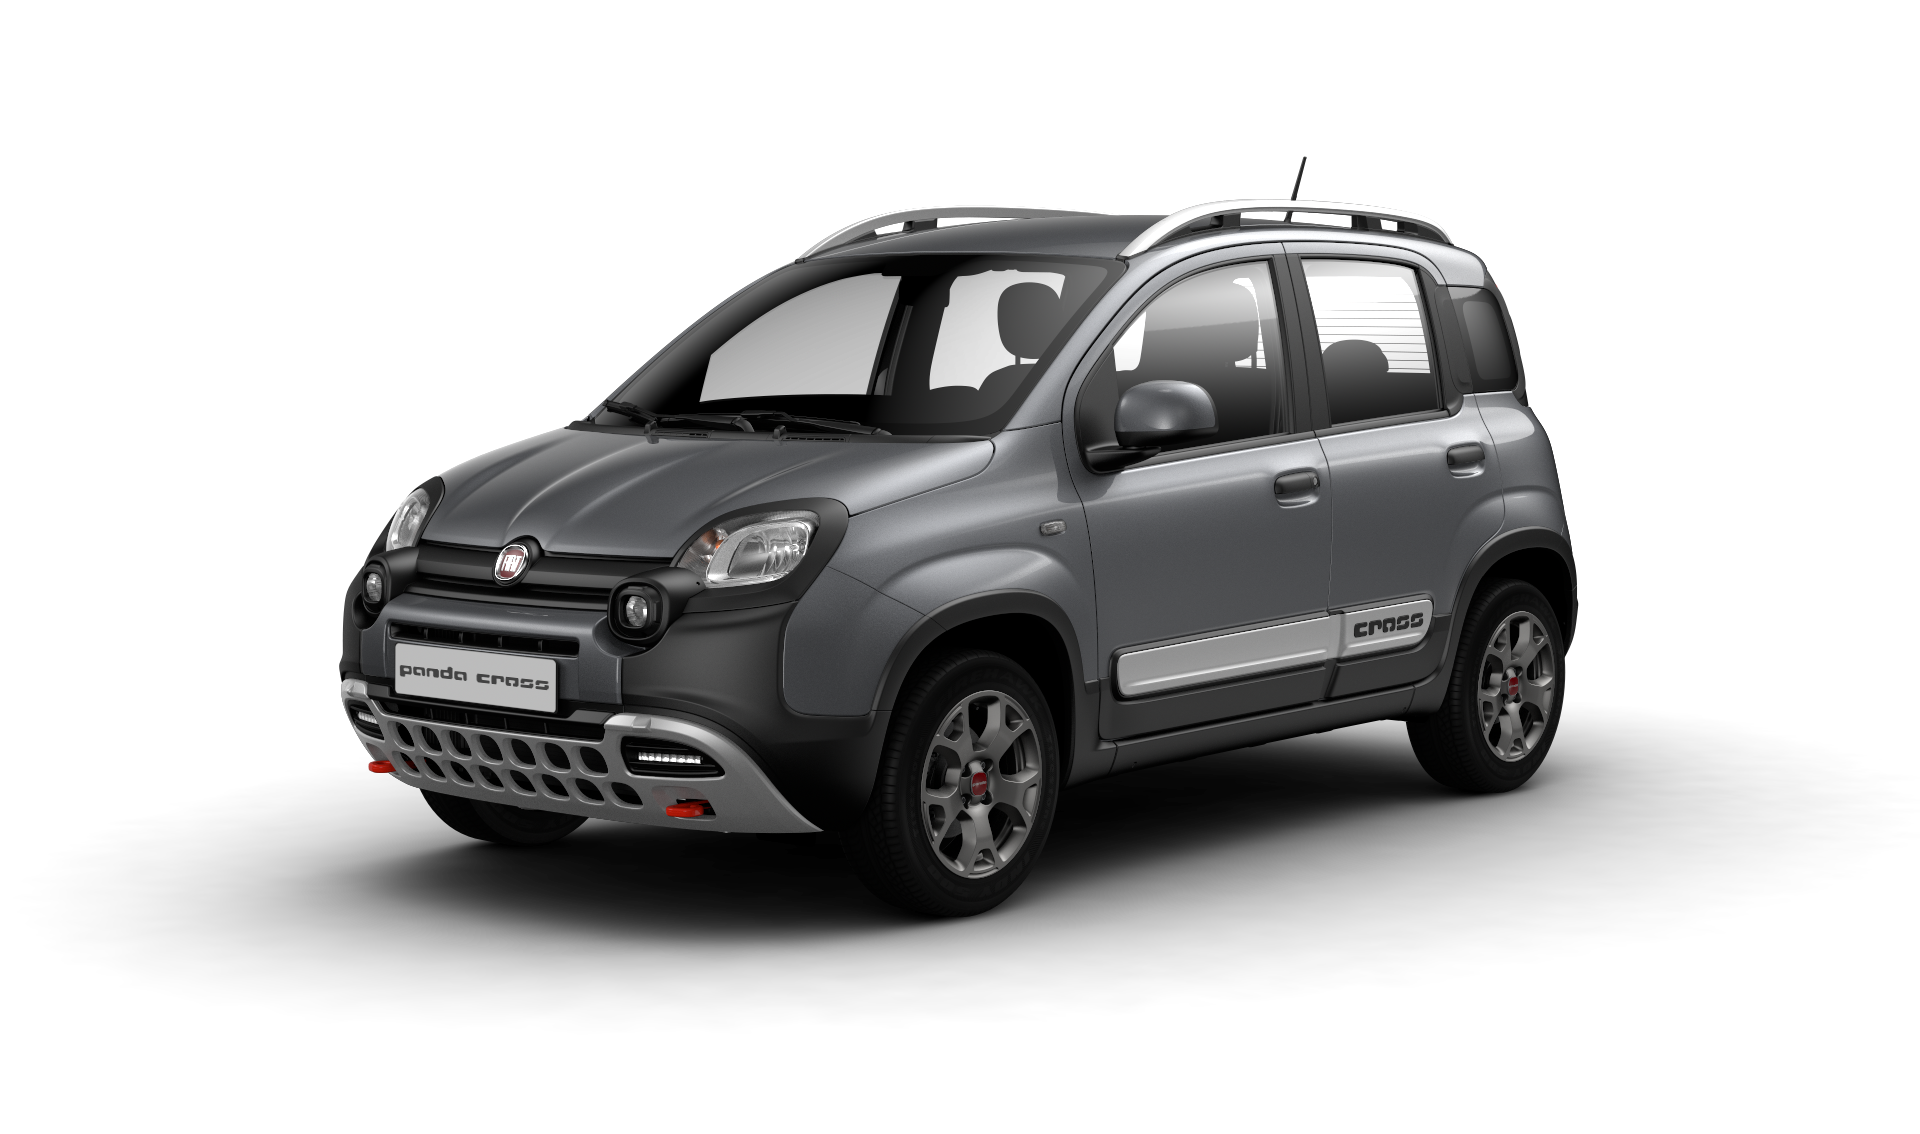 fiat panda cross dimensions cars inspiration gallery. Black Bedroom Furniture Sets. Home Design Ideas